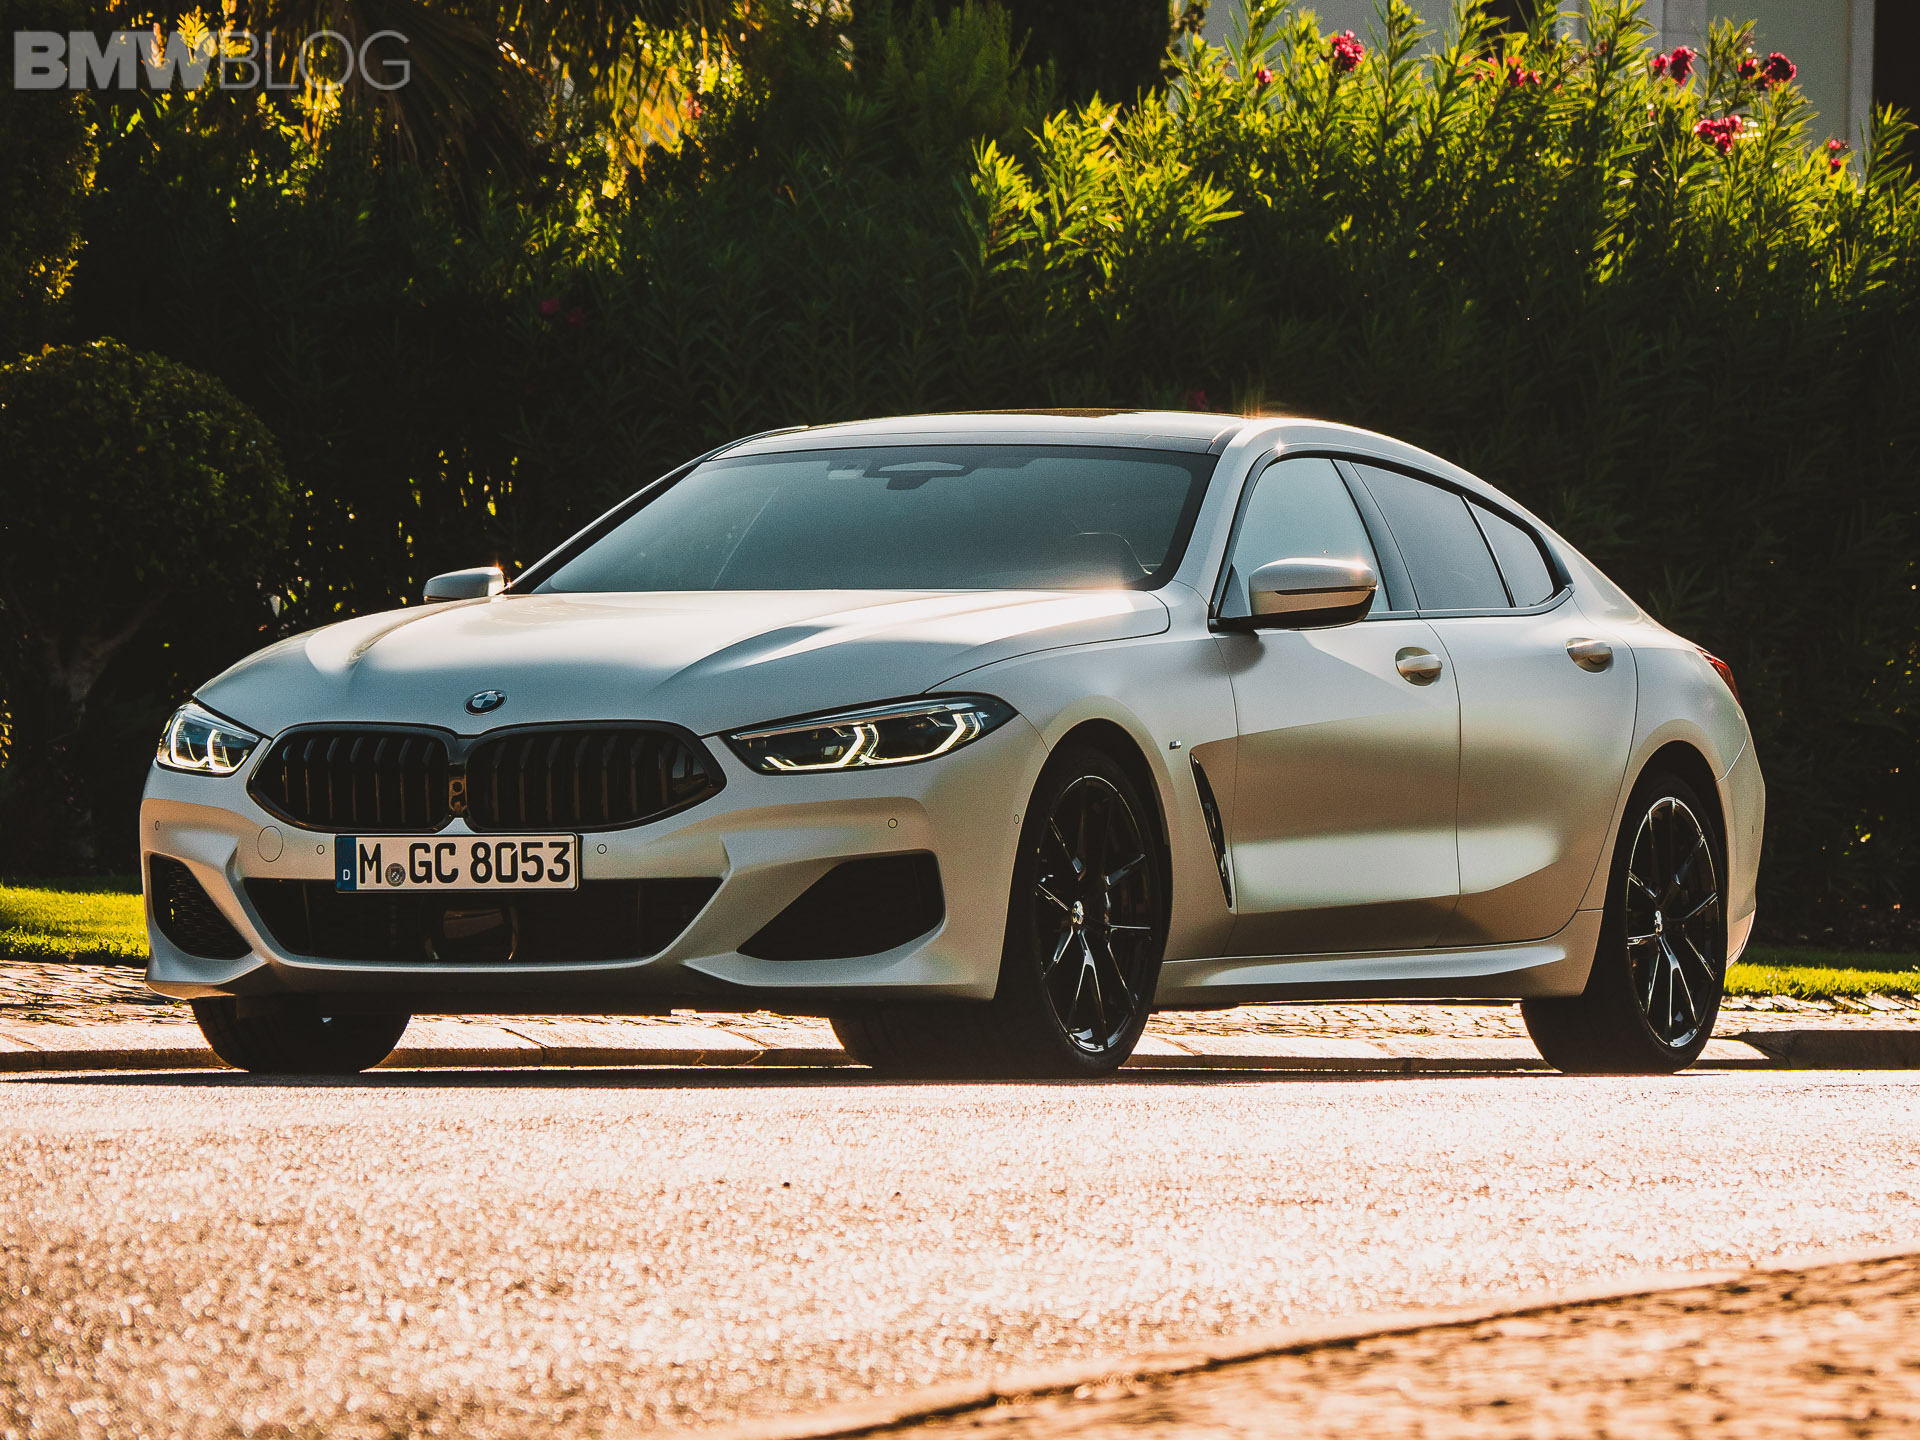 2020 BMW 8 SERIES GRAN COUPE PHOTOS 5